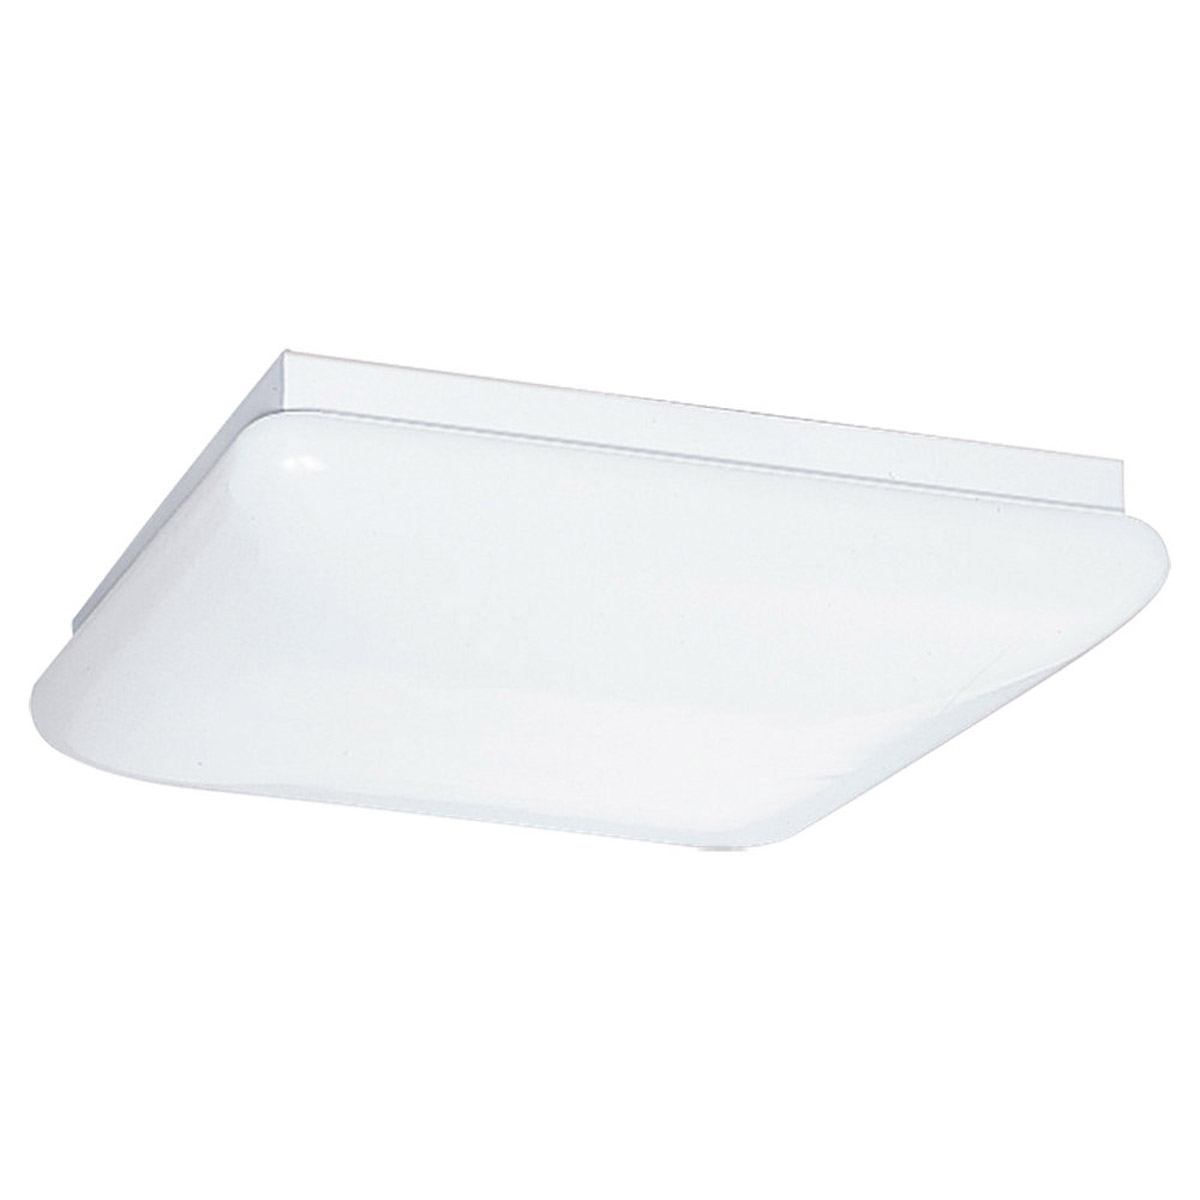 Sea Gull Lighting Signature 2 Light Fluorescent Trim Only in White Plastic 5911-68 photo